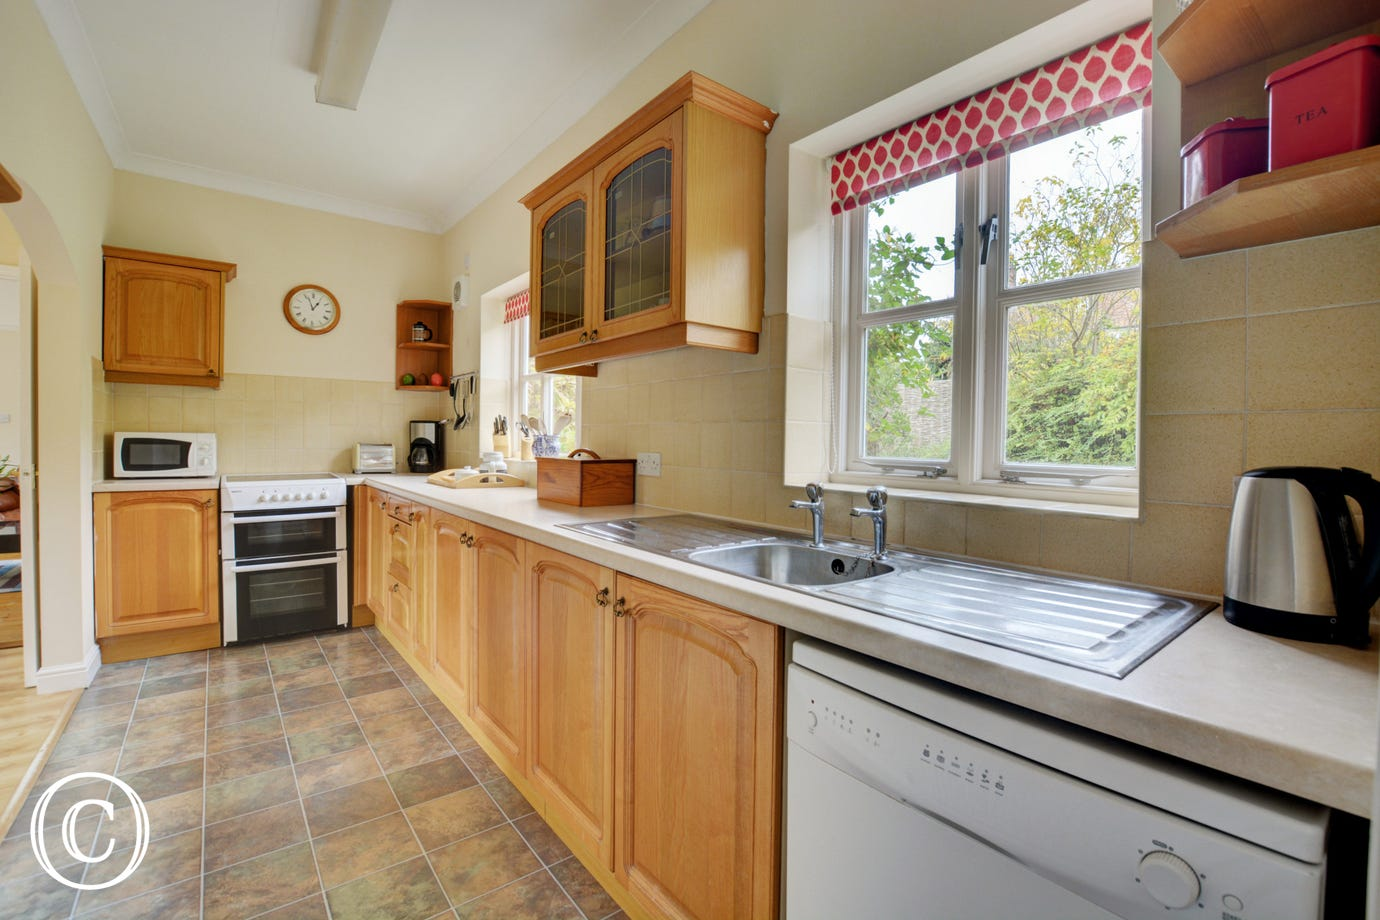 Light wood kitchen units with window facing into garden.